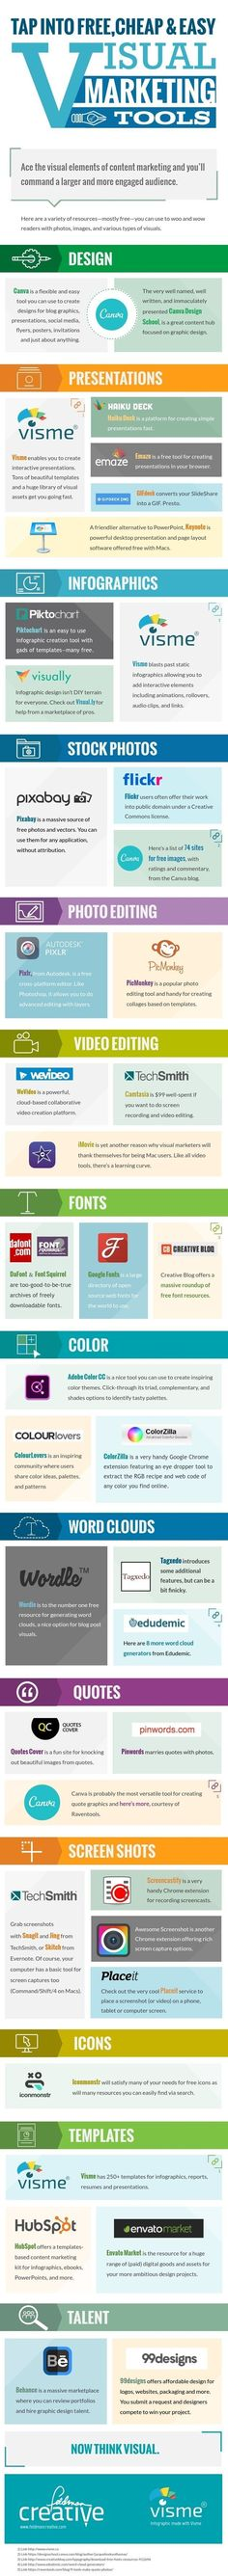 Tap Into Free, Cheap, and Easy Visual Marketing Tools [Infographic] - /marketingprofs/